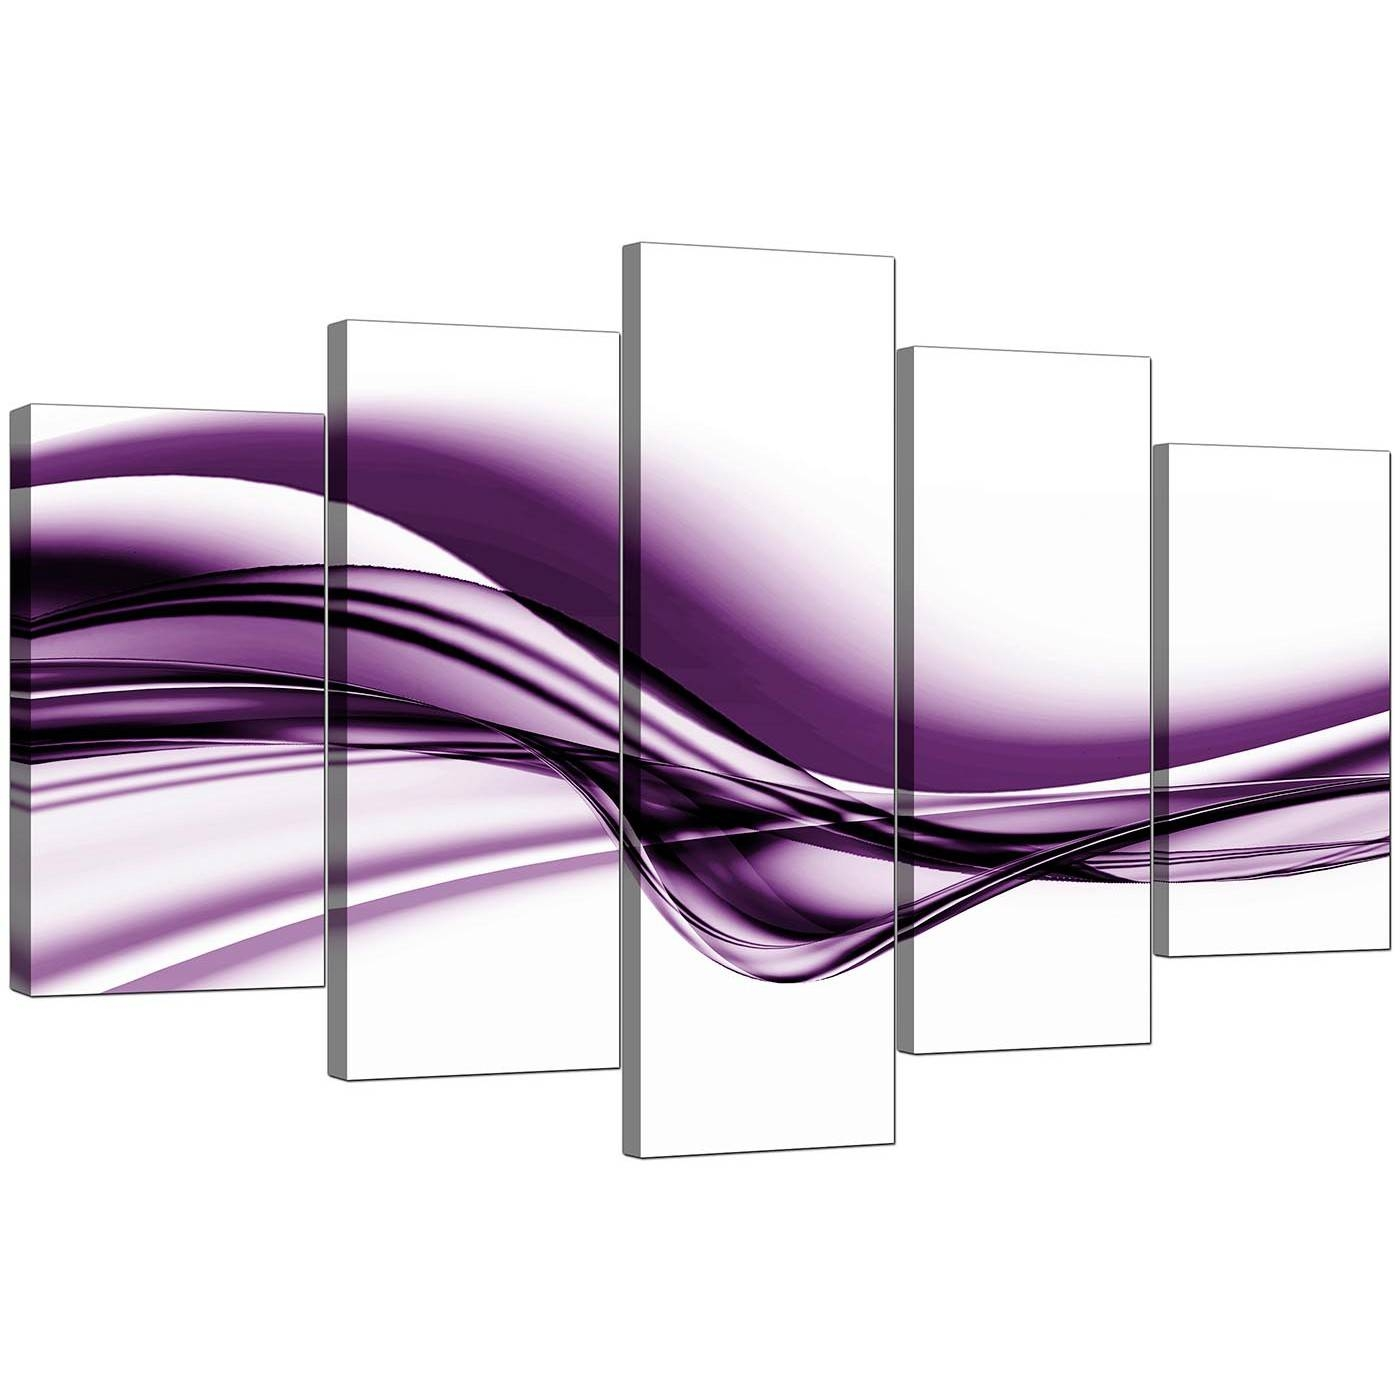 Extra Large Purple Abstract Canvas Prints – 5 Piece Intended For Most Up To Date Purple Abstract Wall Art (View 11 of 20)